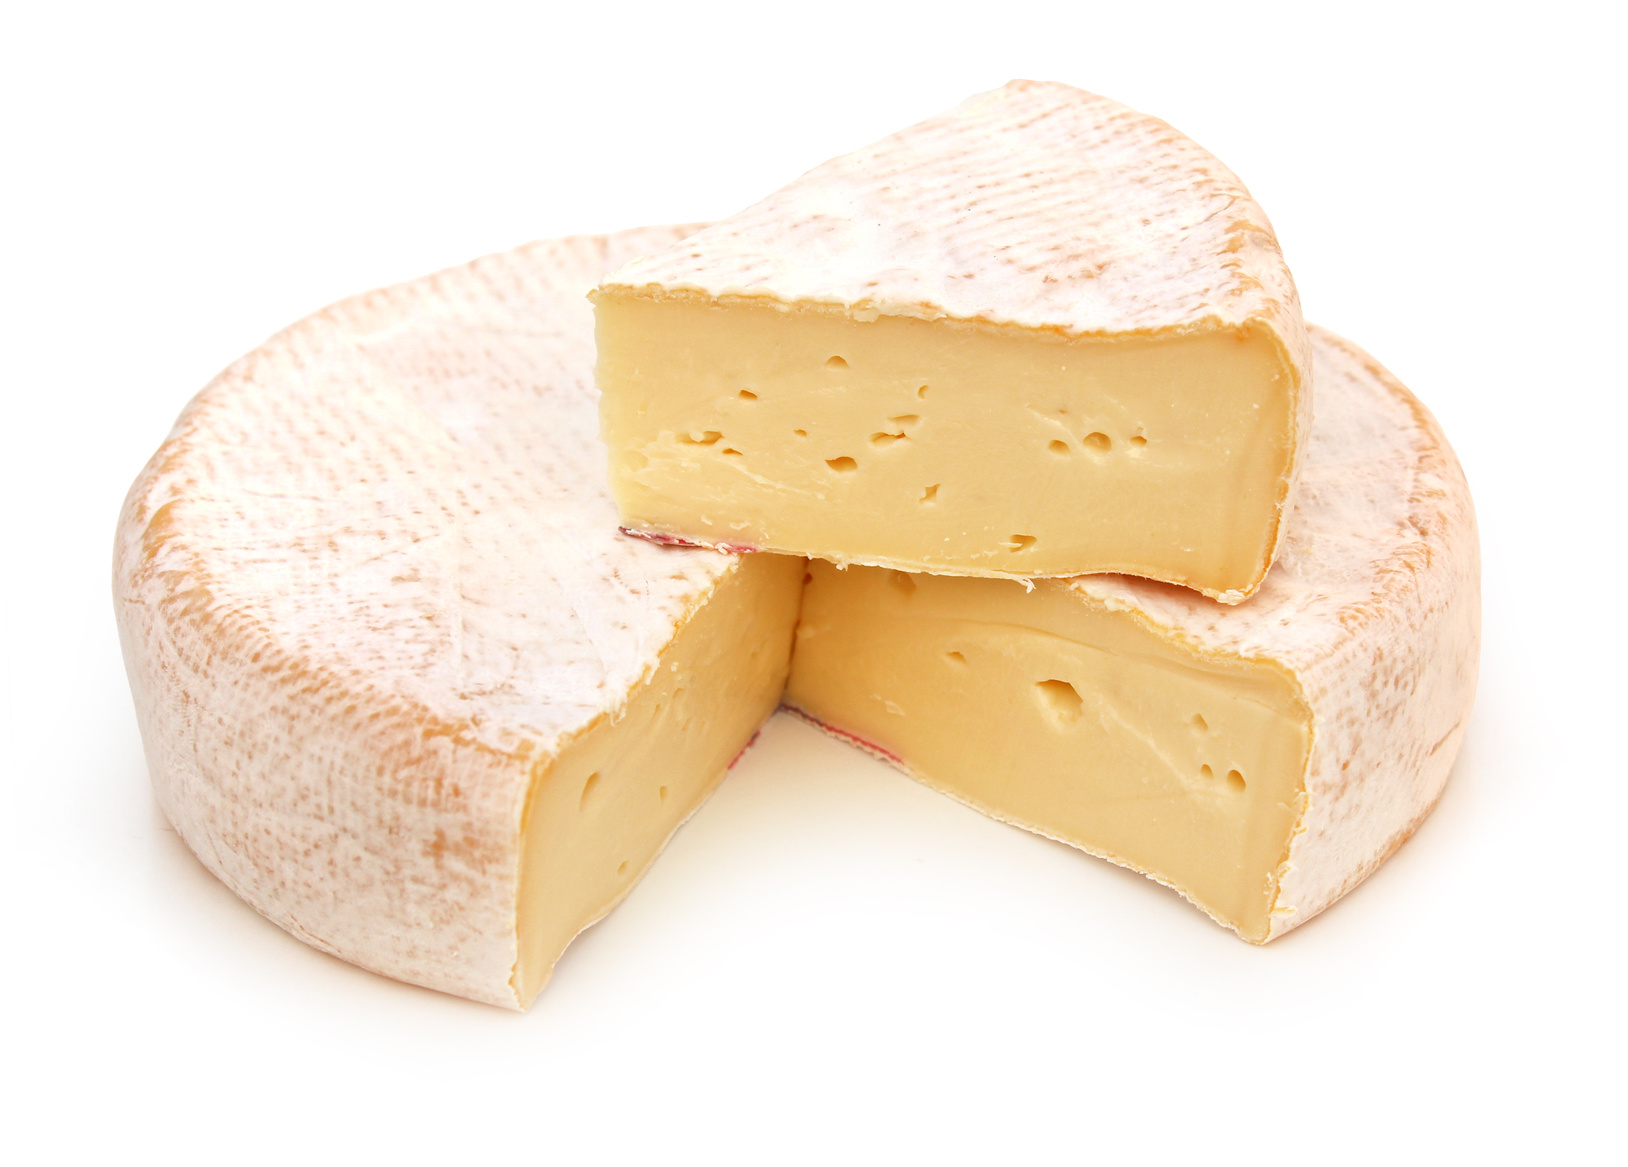 Reblochon de Savoie - french cheese